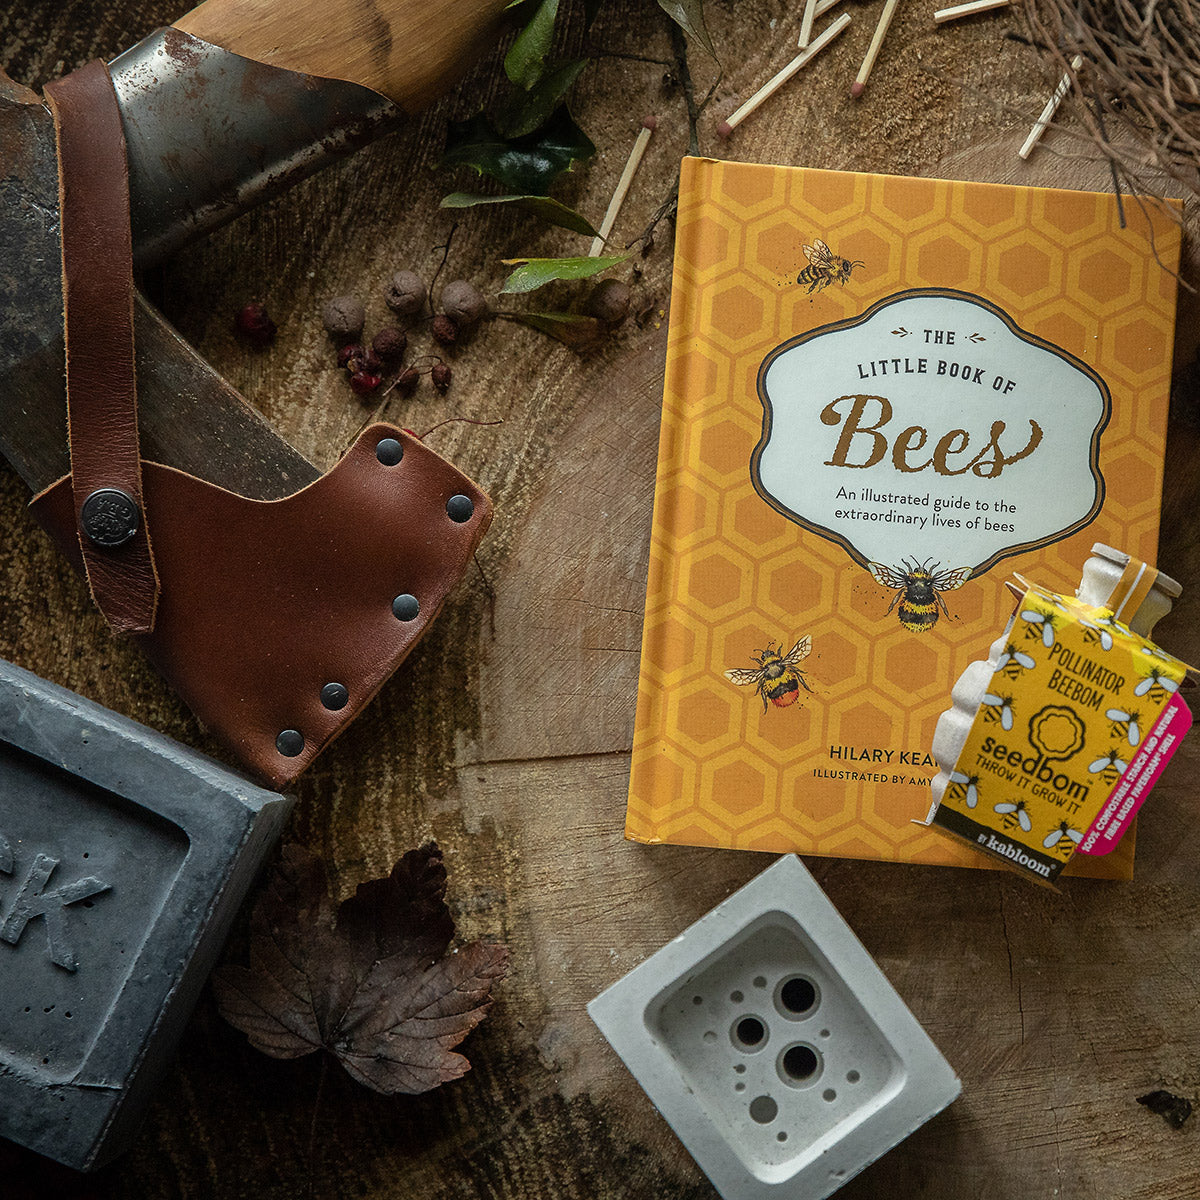 Bee lover gift bundle including bee hotel, book and wildflower seeds, shown on wooden background